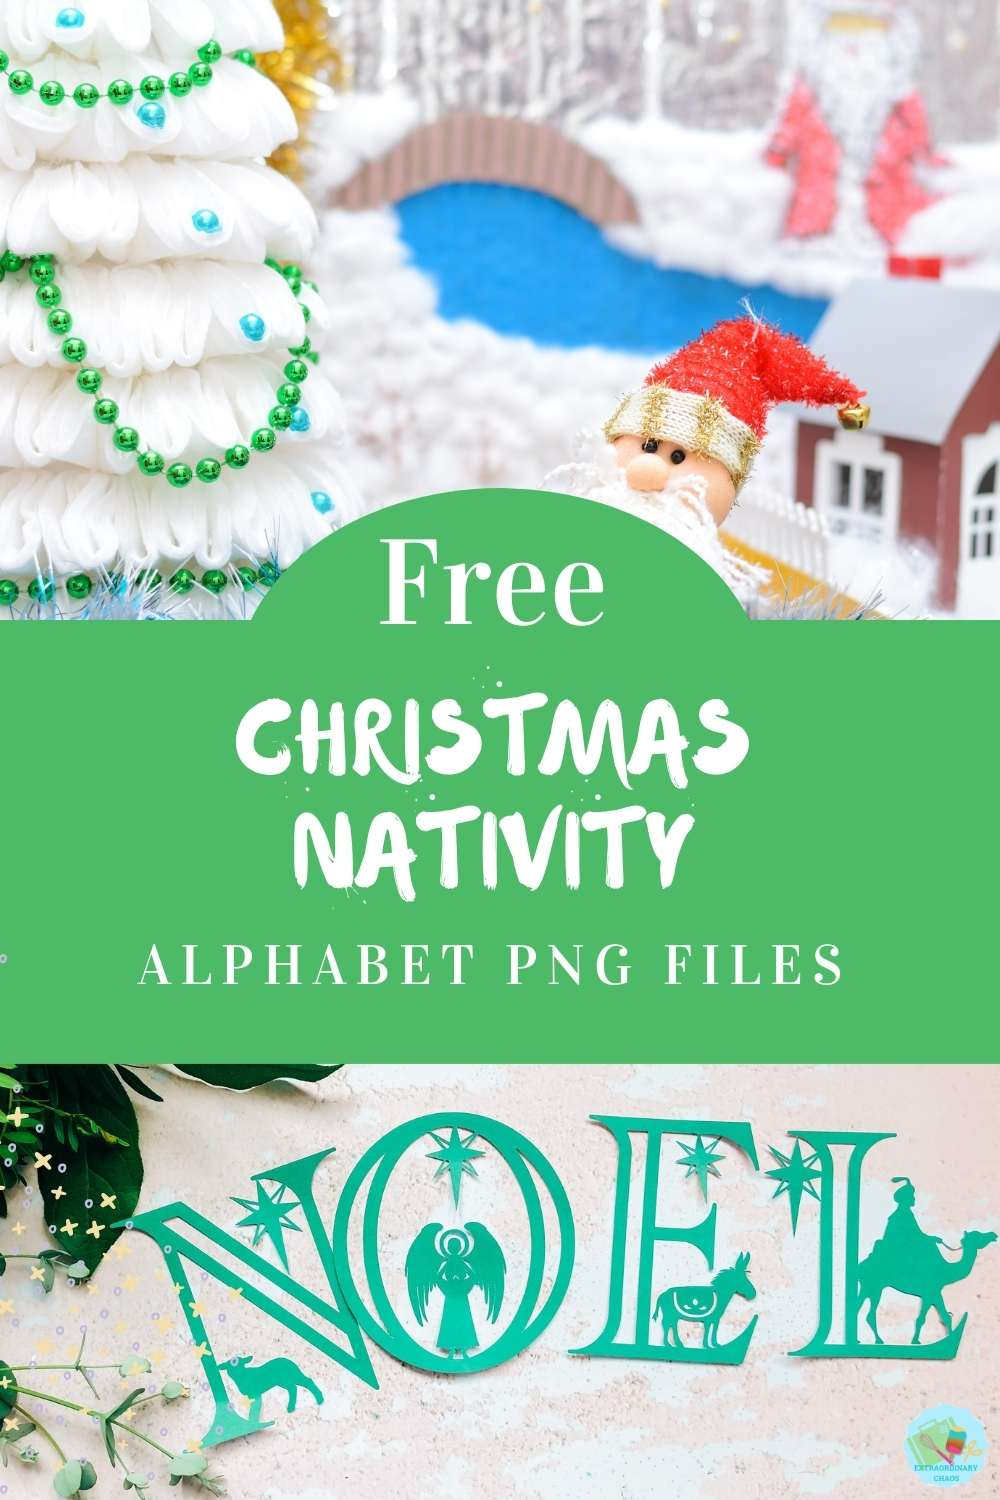 Free Christmas Nativity Alphabet and Numbers png files for Cricut and Silhouette